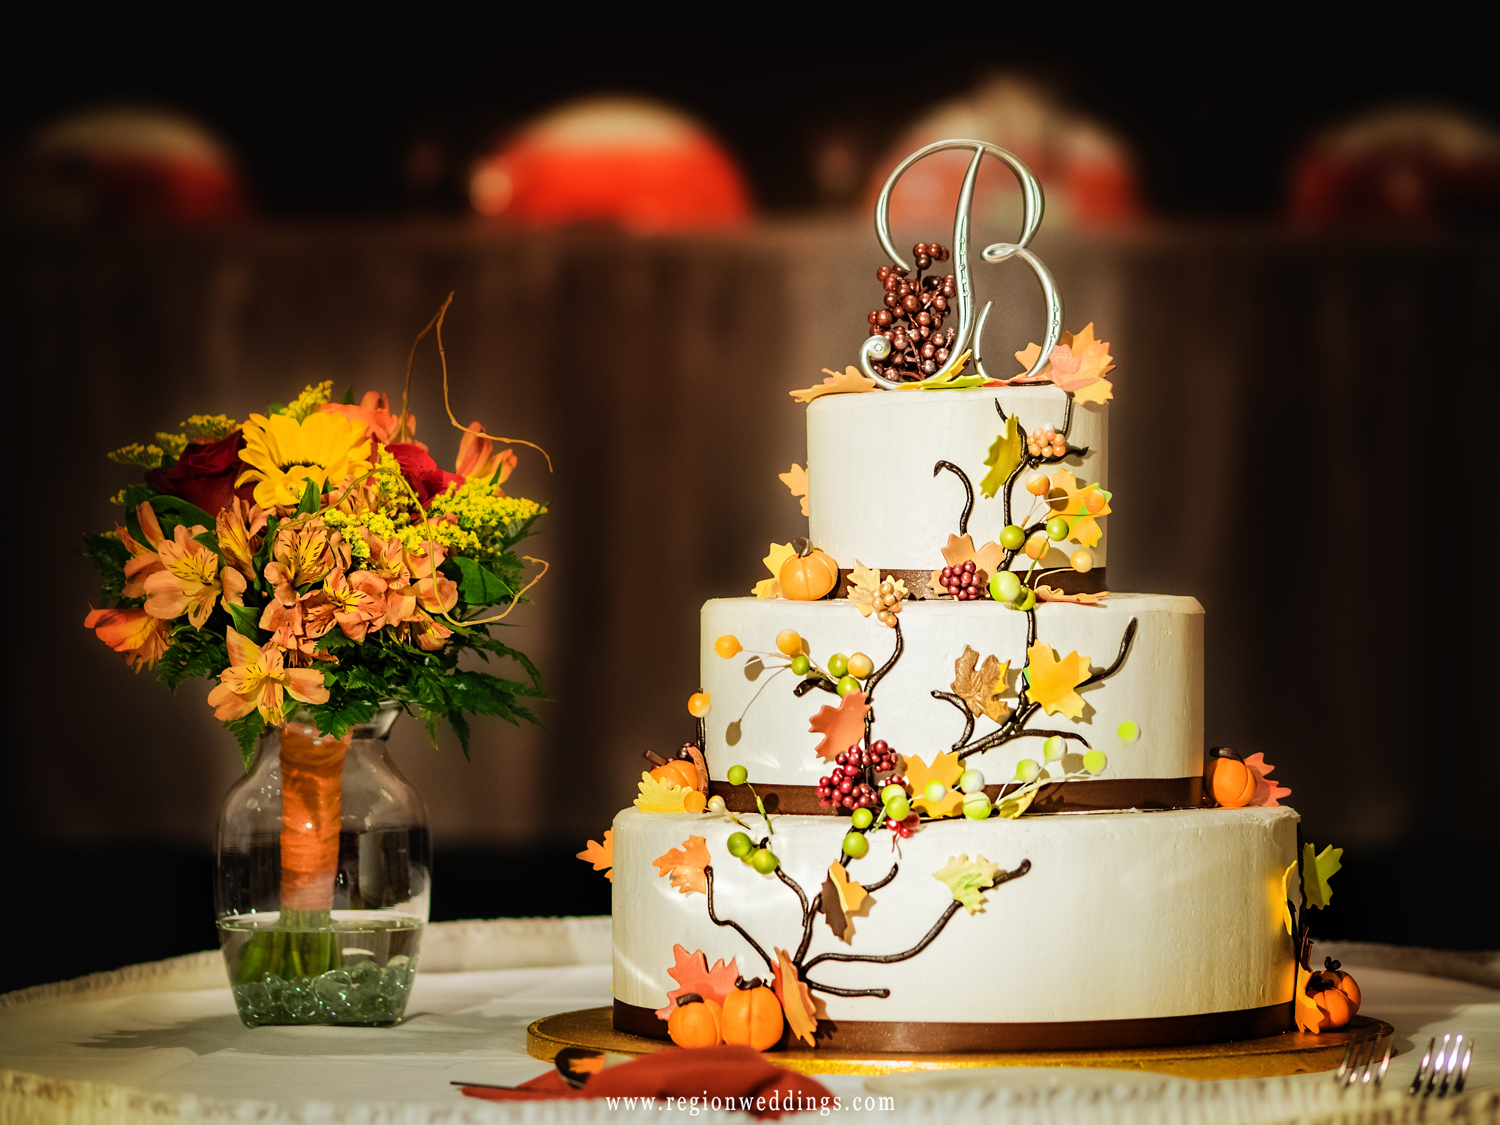 Wedding cake decorated for the Fall season.